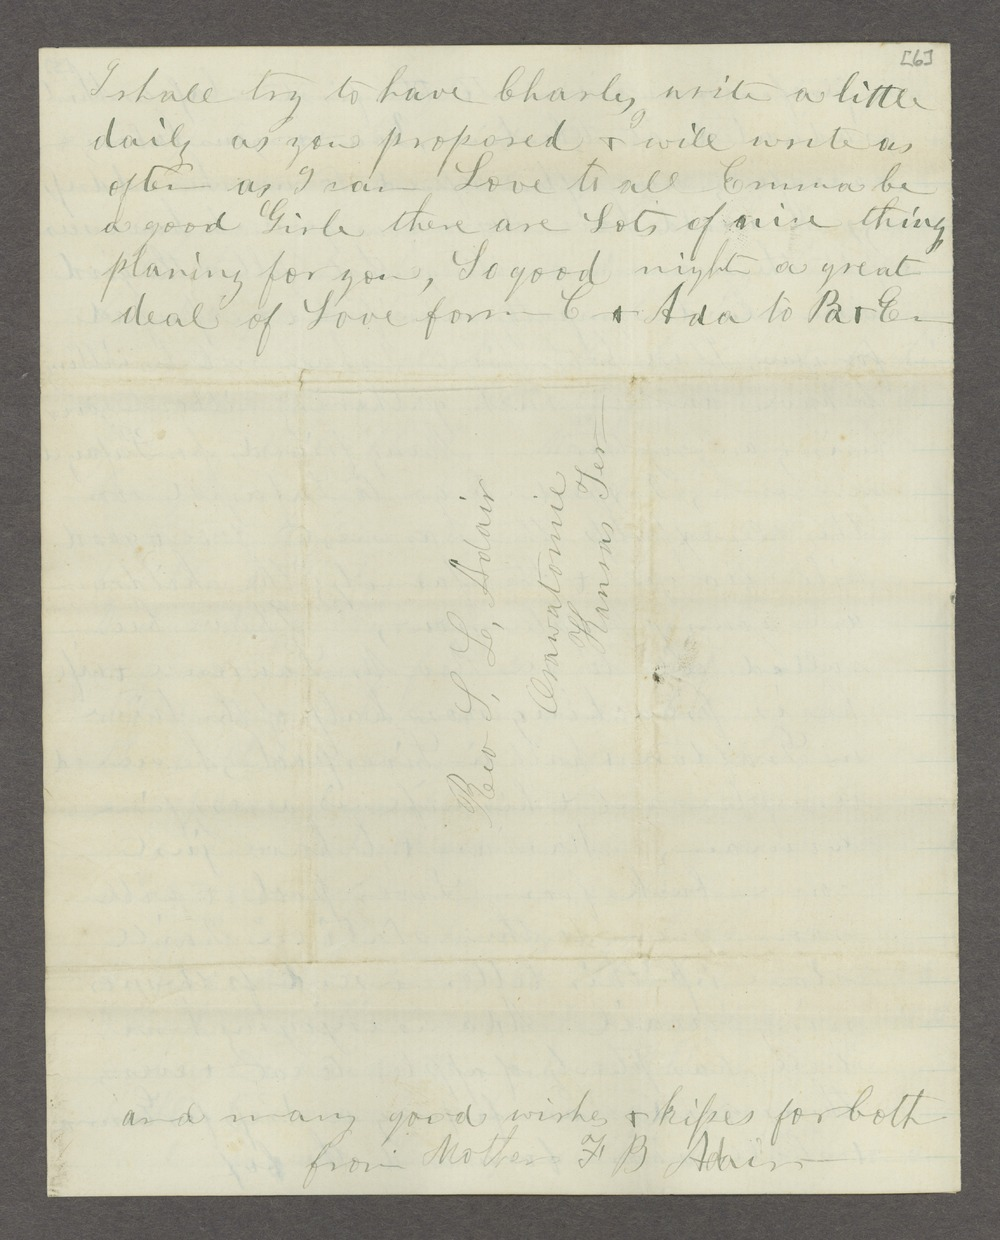 Correspondence between Samuel Lyle Adair, Florella Brown Adair, and their children - 8